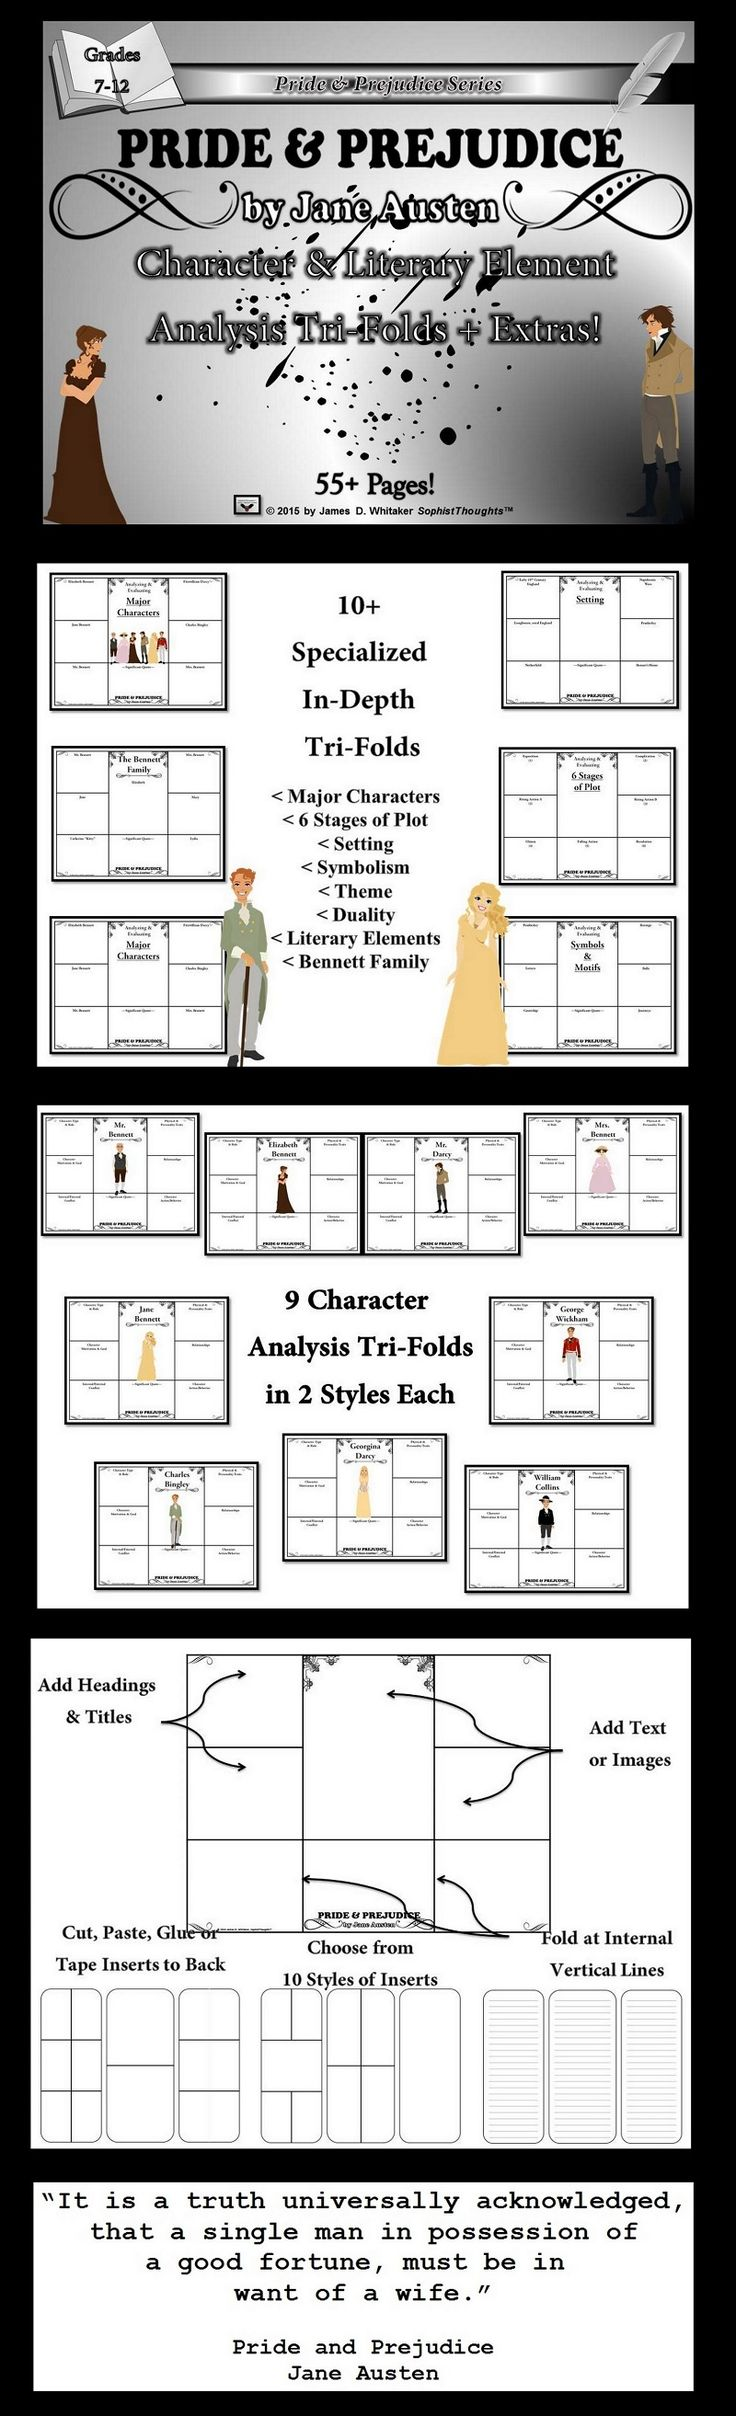 critical essays on pride and prejudice jane austen s pride and  ideas about pride and prejudice analysis pride prejudice by jane austen character literary element analysis tri